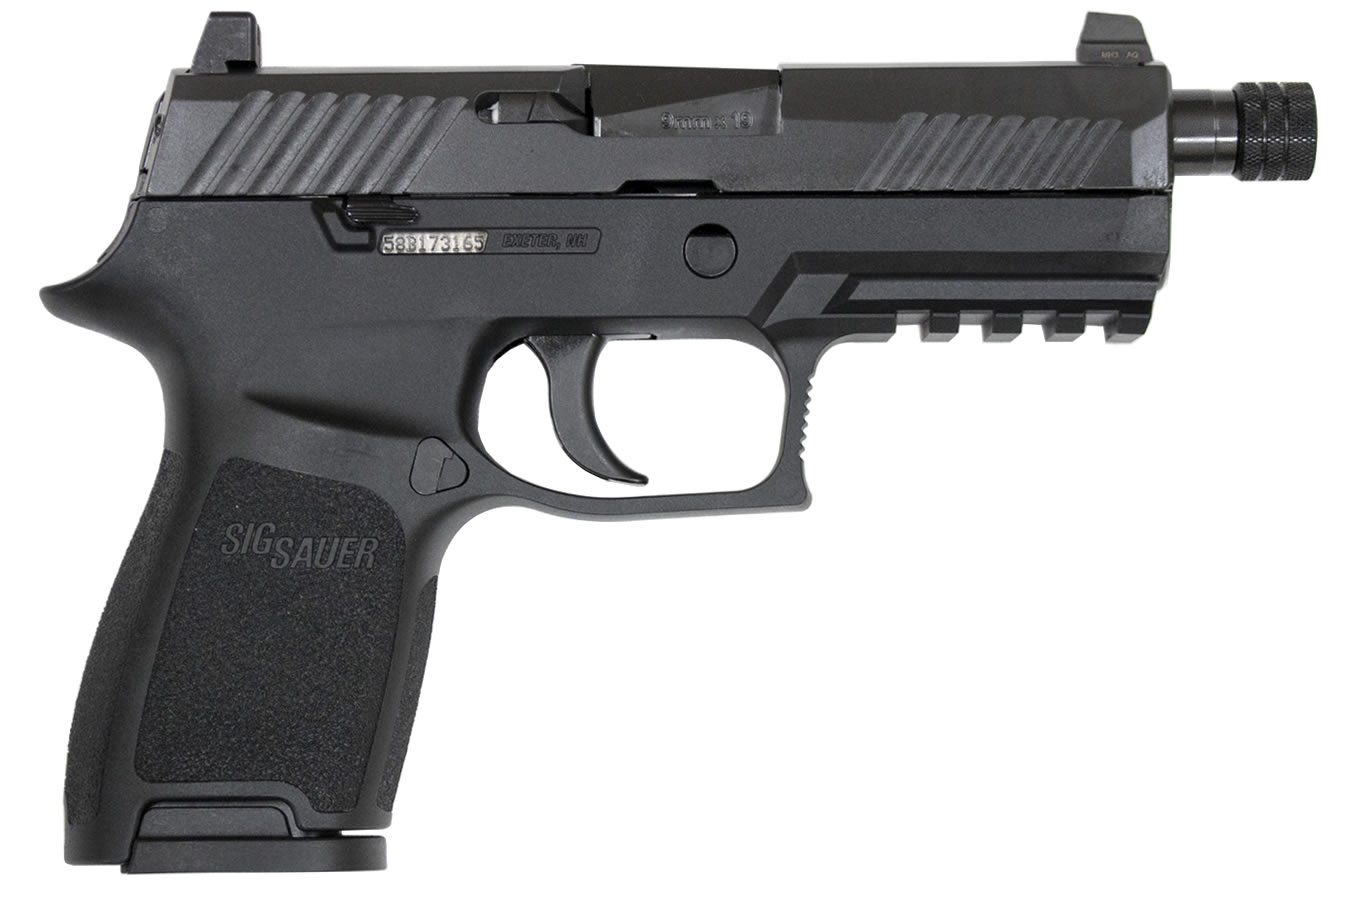 Sig Sauer P320 Compact 9mm Striker Fired Pistol With